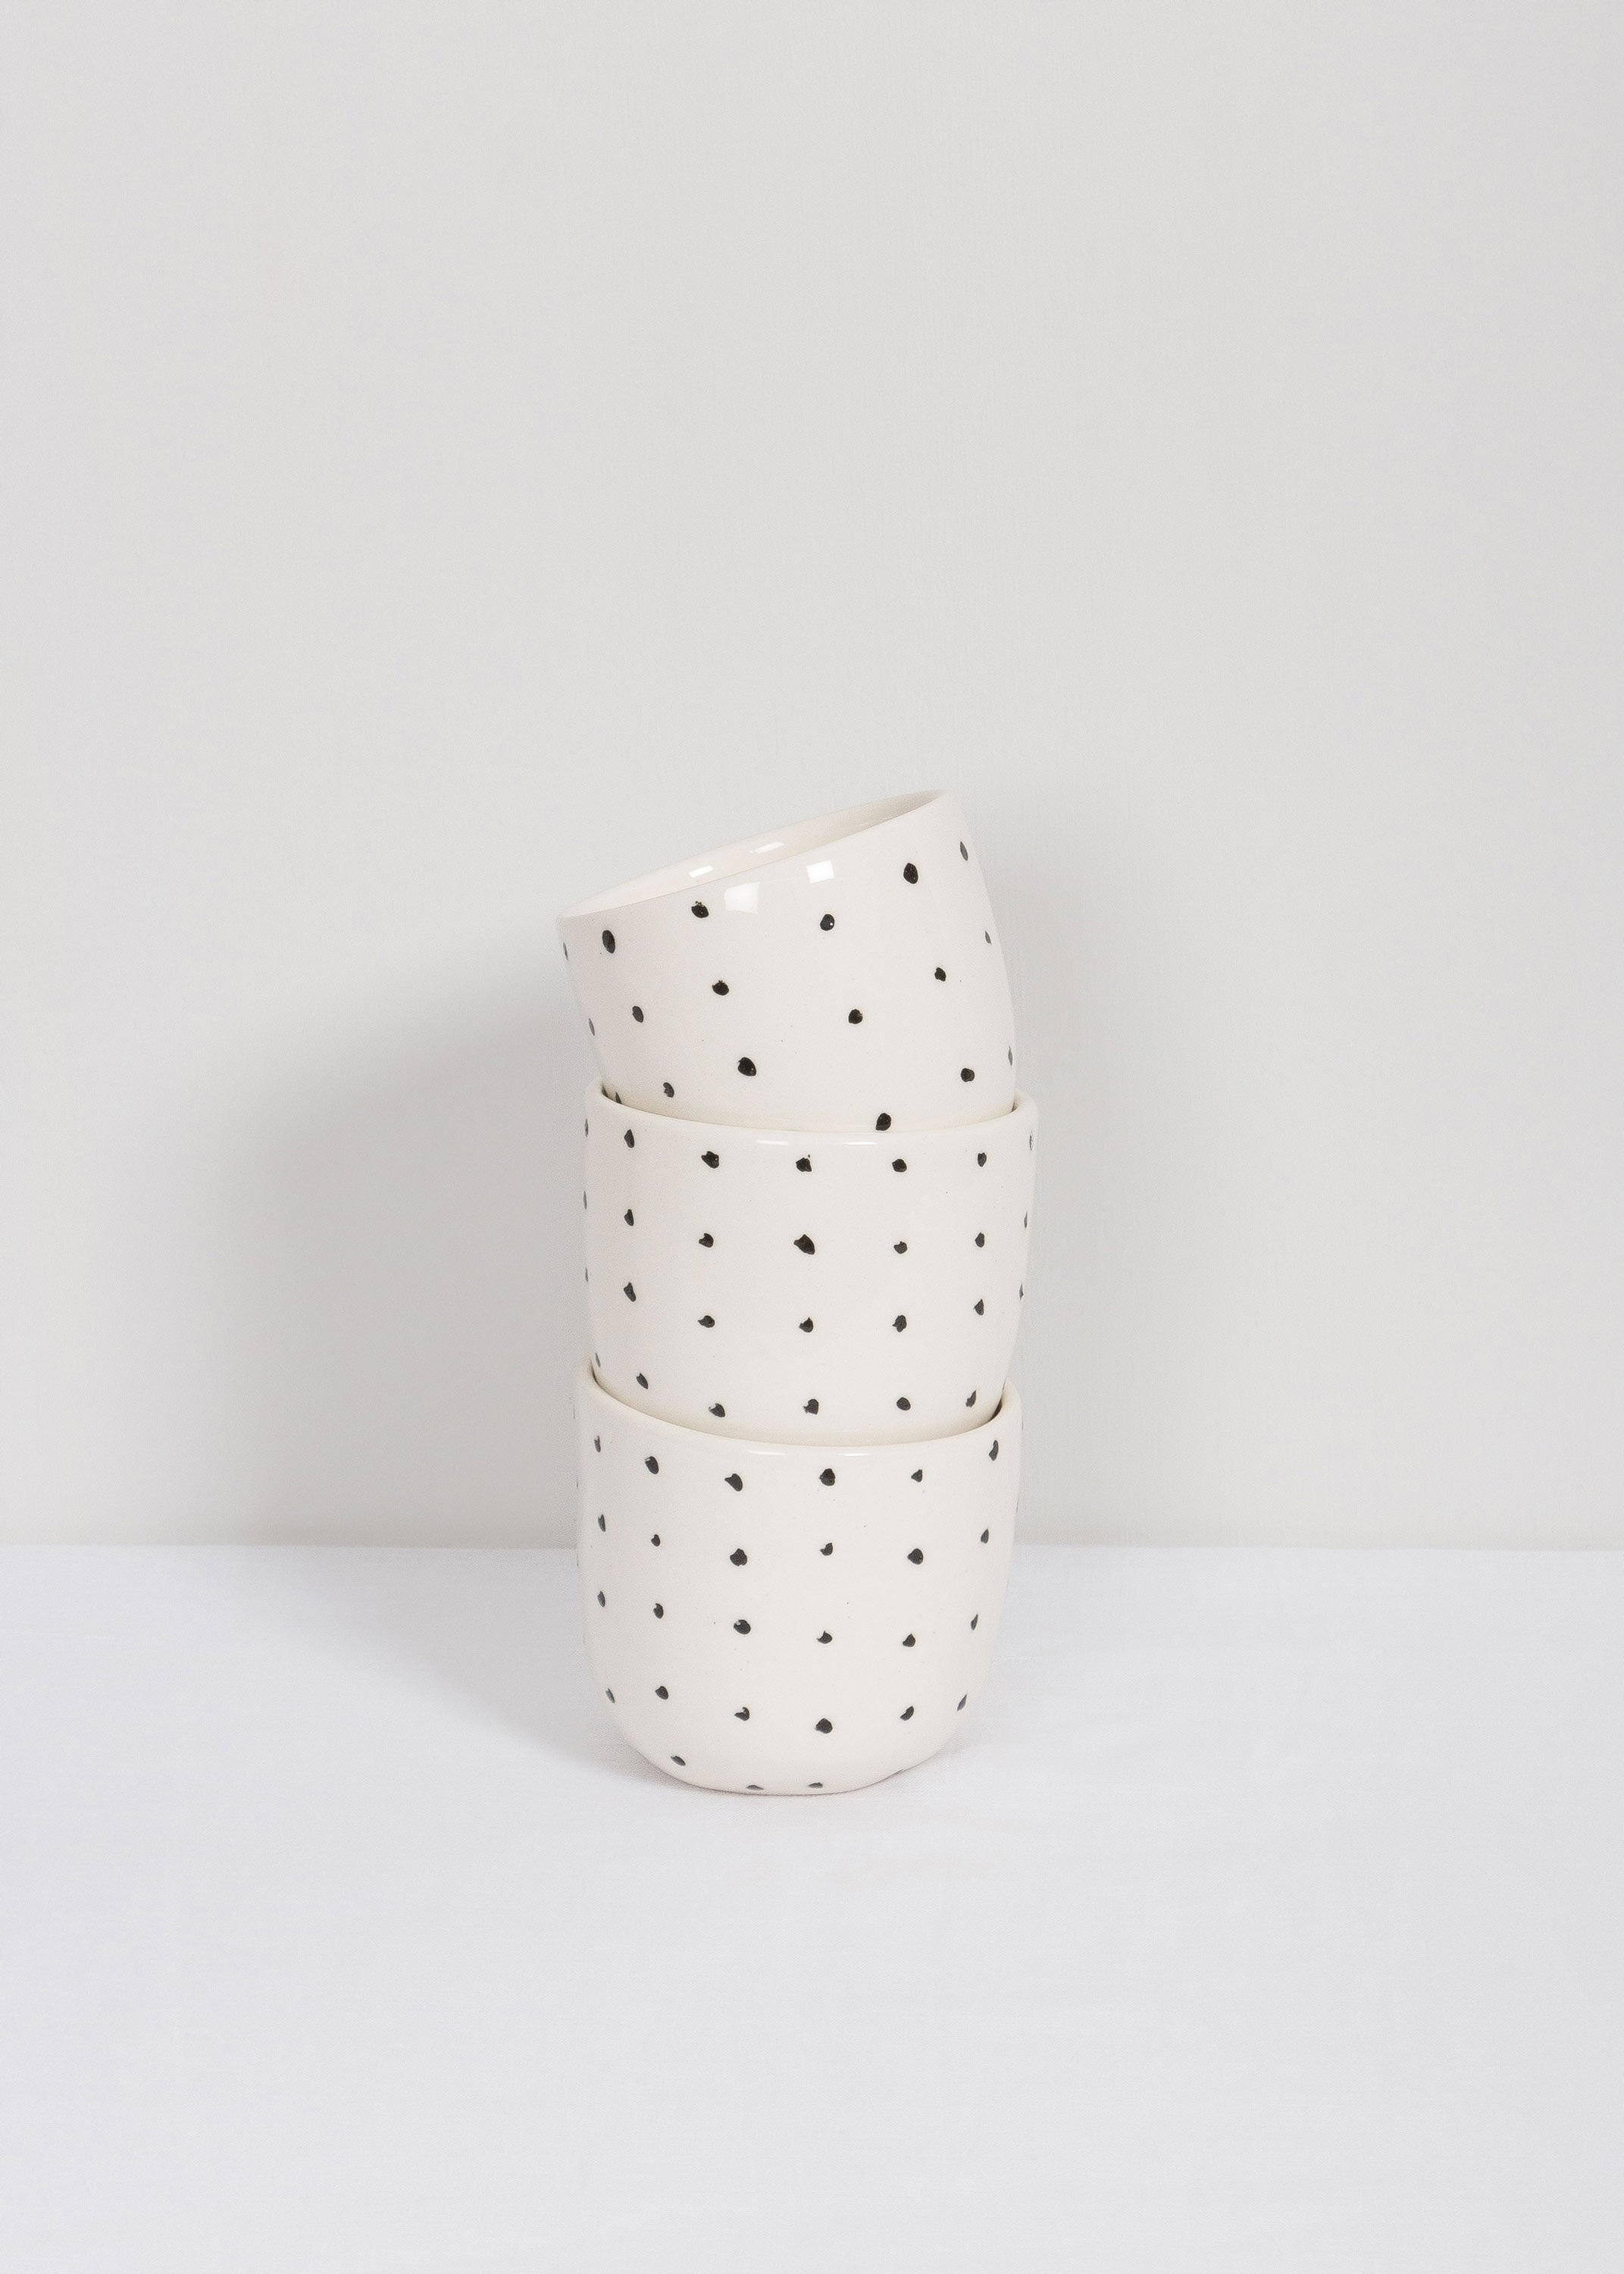 Kowtow x Houston Ceramics Collaboration The Studio